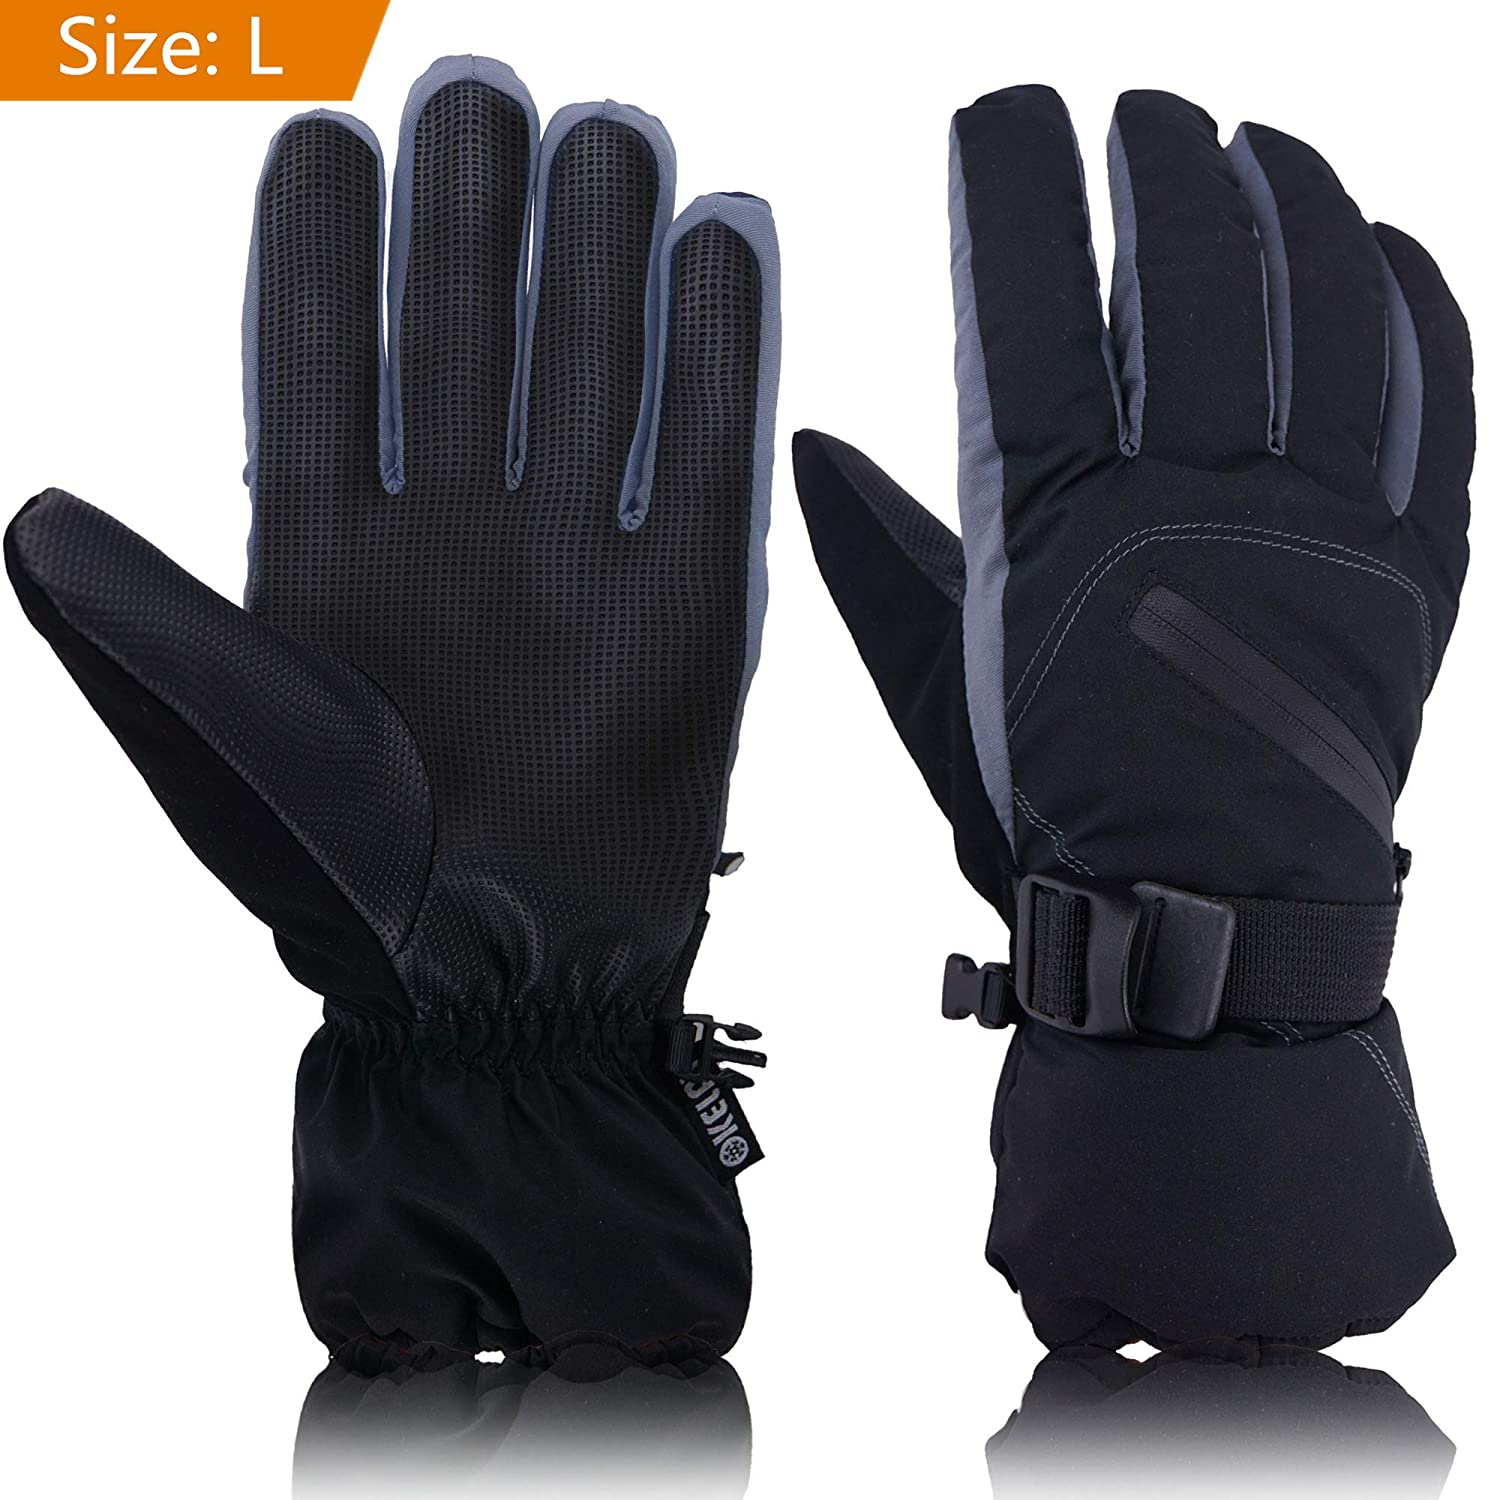 Ski Gloves Mens, OKELAY Winter Gloves Waterproof WindProof Thermal Thinsulate, Professional Winter Sport Insulated Warm Protective Gear with Zipper Pocket For Outdoor Downhill Skiing Snowboarding Motocycling Cycling